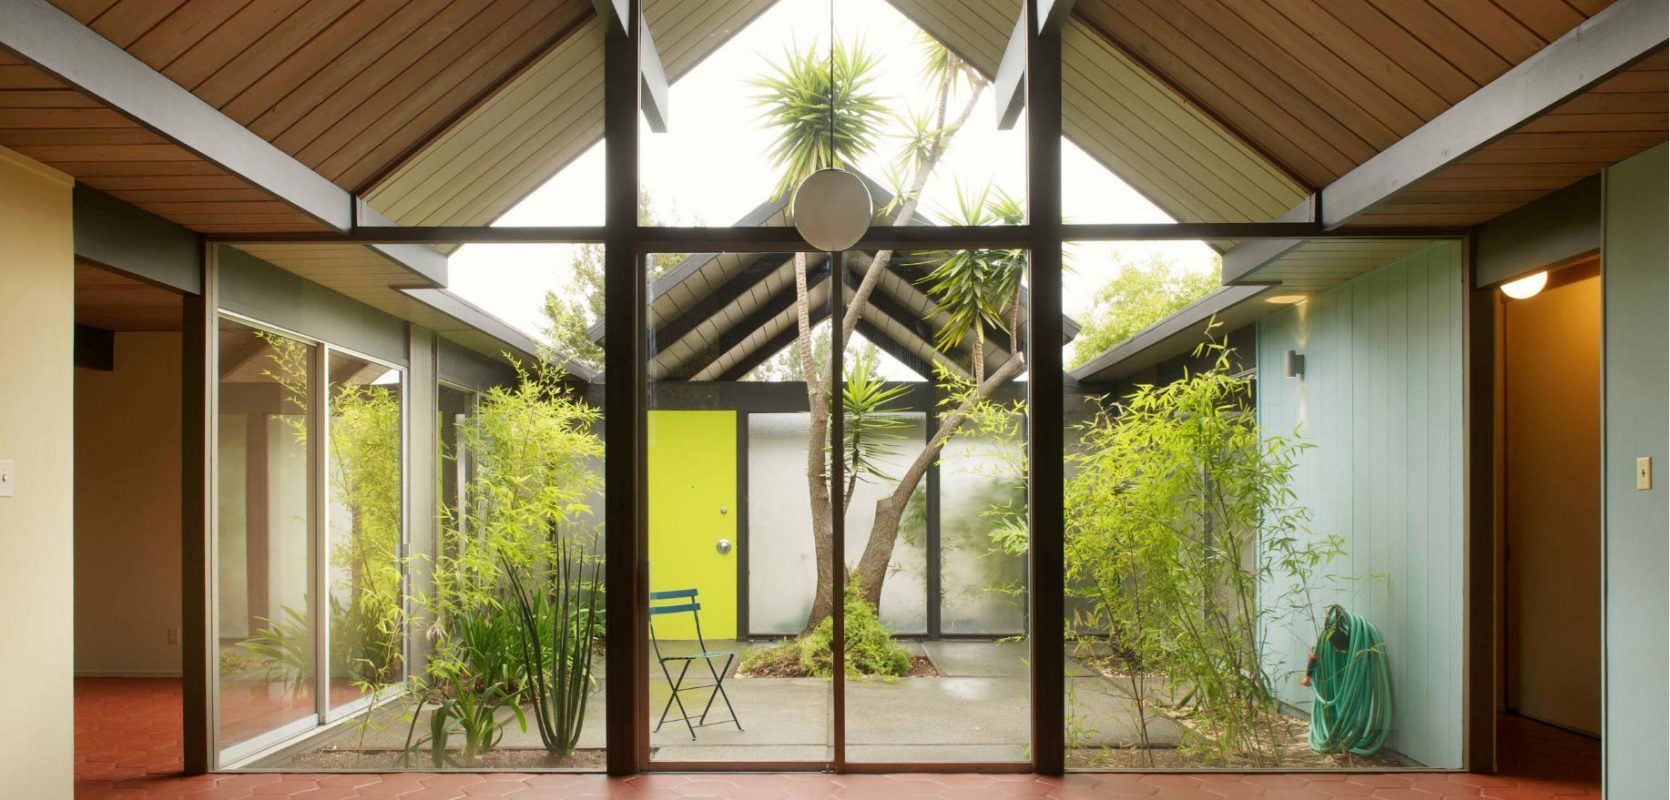 home interior with exposed beams and open-air courtyard